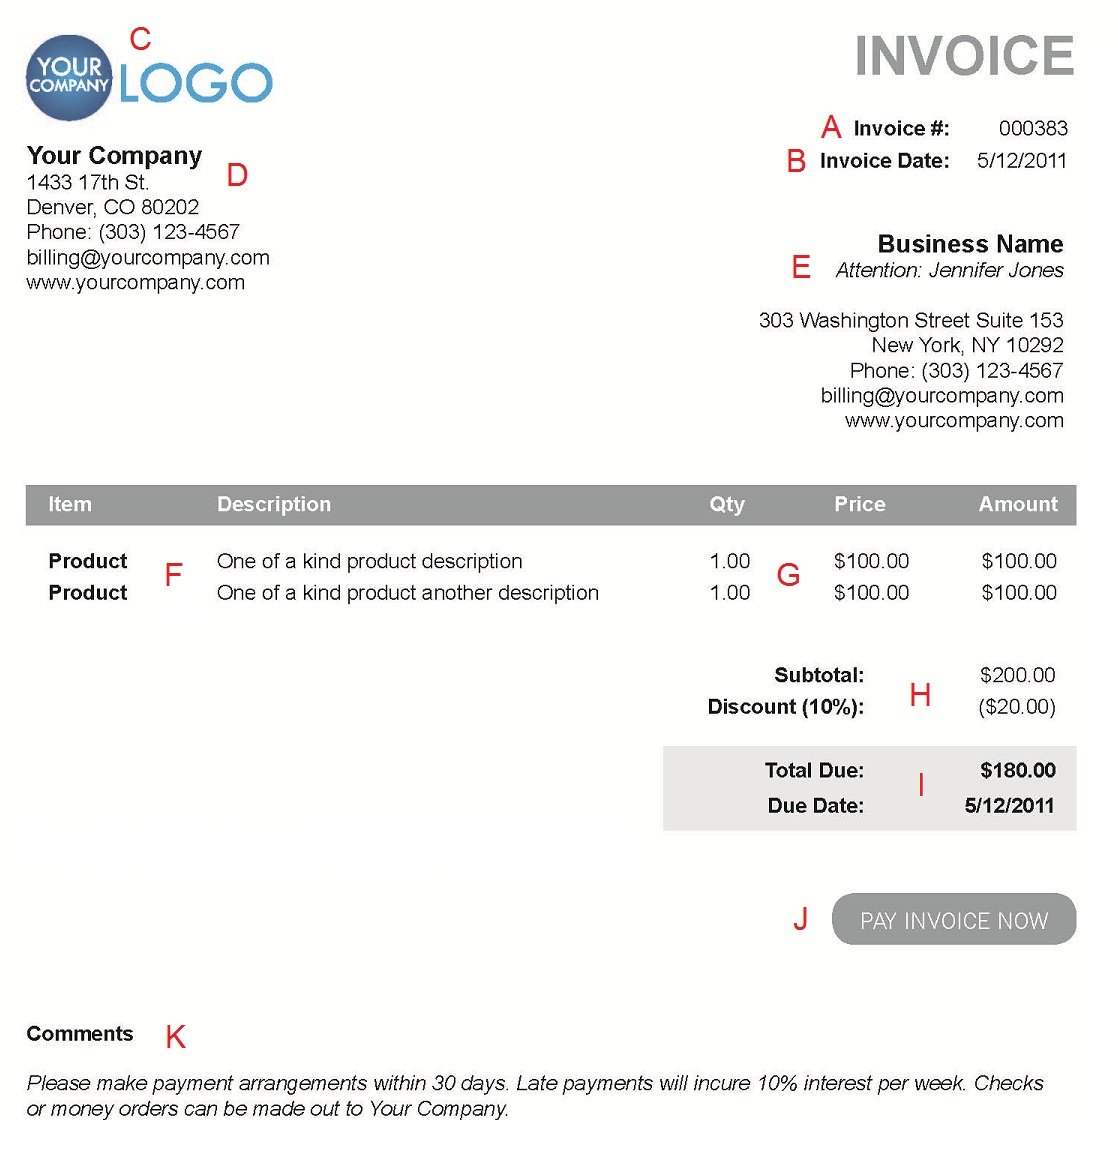 Pxworkoutfreeus  Marvellous The  Different Sections Of An Electronic Payment Invoice With Foxy A  With Charming Rogers Invoice Also Prepare Invoice Online In Addition Crm Invoicing And Invoice Professional As Well As Pro Form Invoice Additionally Invoice Sample Xls From Paysimplecom With Pxworkoutfreeus  Foxy The  Different Sections Of An Electronic Payment Invoice With Charming A  And Marvellous Rogers Invoice Also Prepare Invoice Online In Addition Crm Invoicing From Paysimplecom